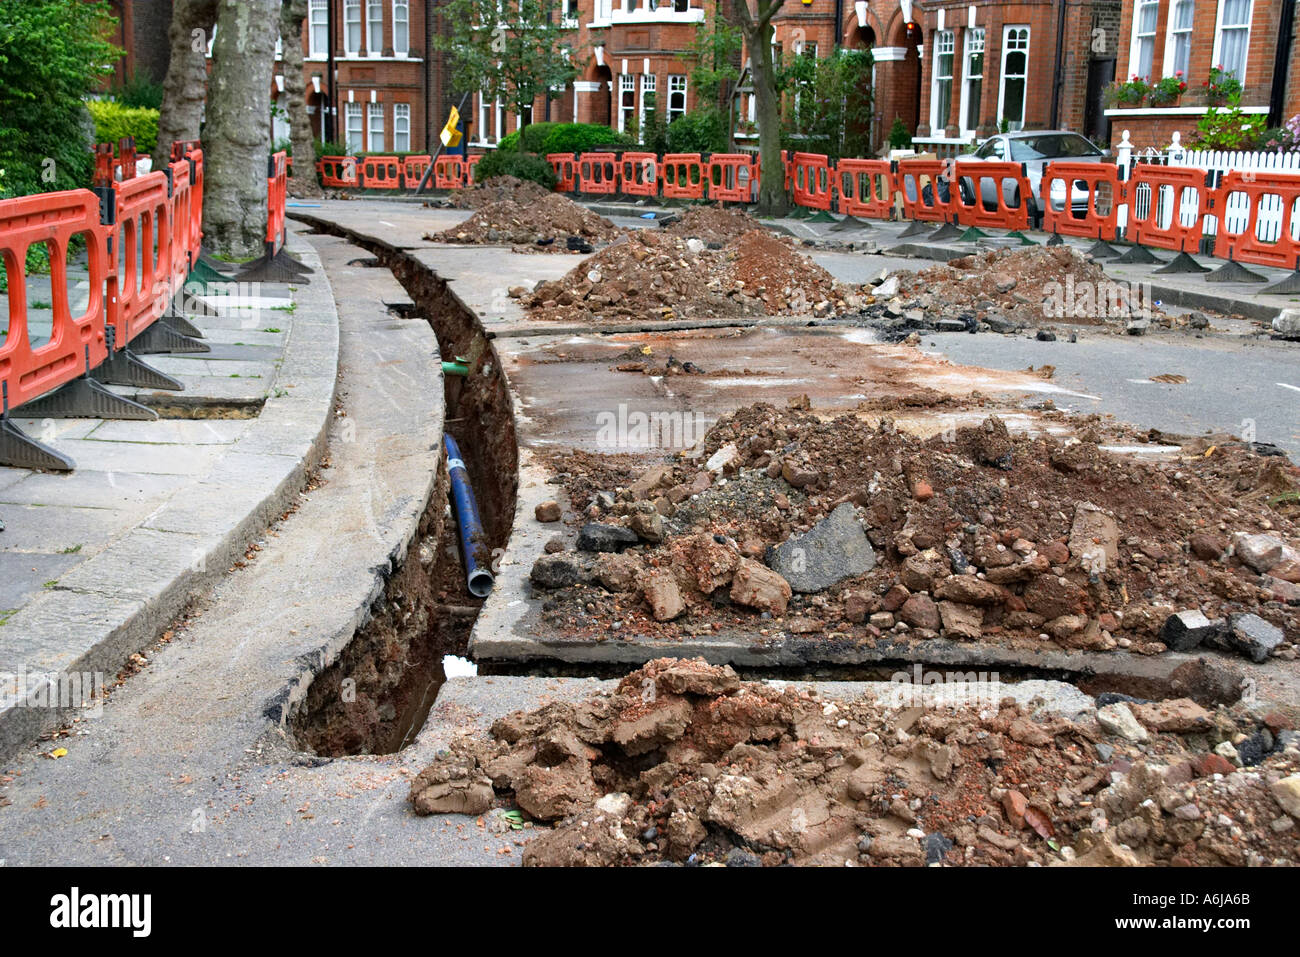 sewer sewerage gas mains water supply road works repair street crater dig digging pipe pipework roadworks cable - Stock Image